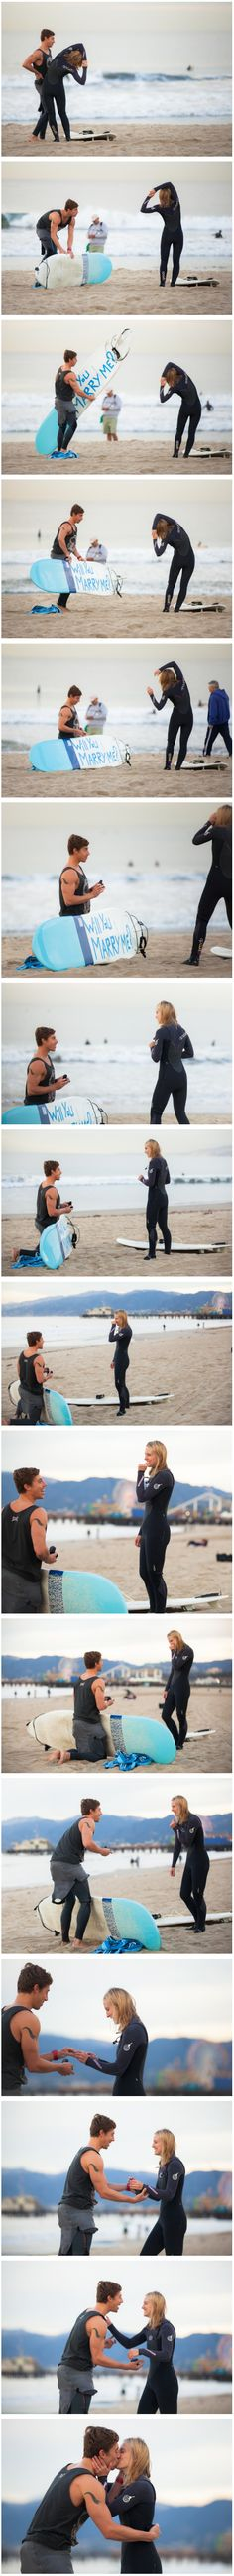 Surfboard proposal http://howheasked.com/surfing-marriage-proposal